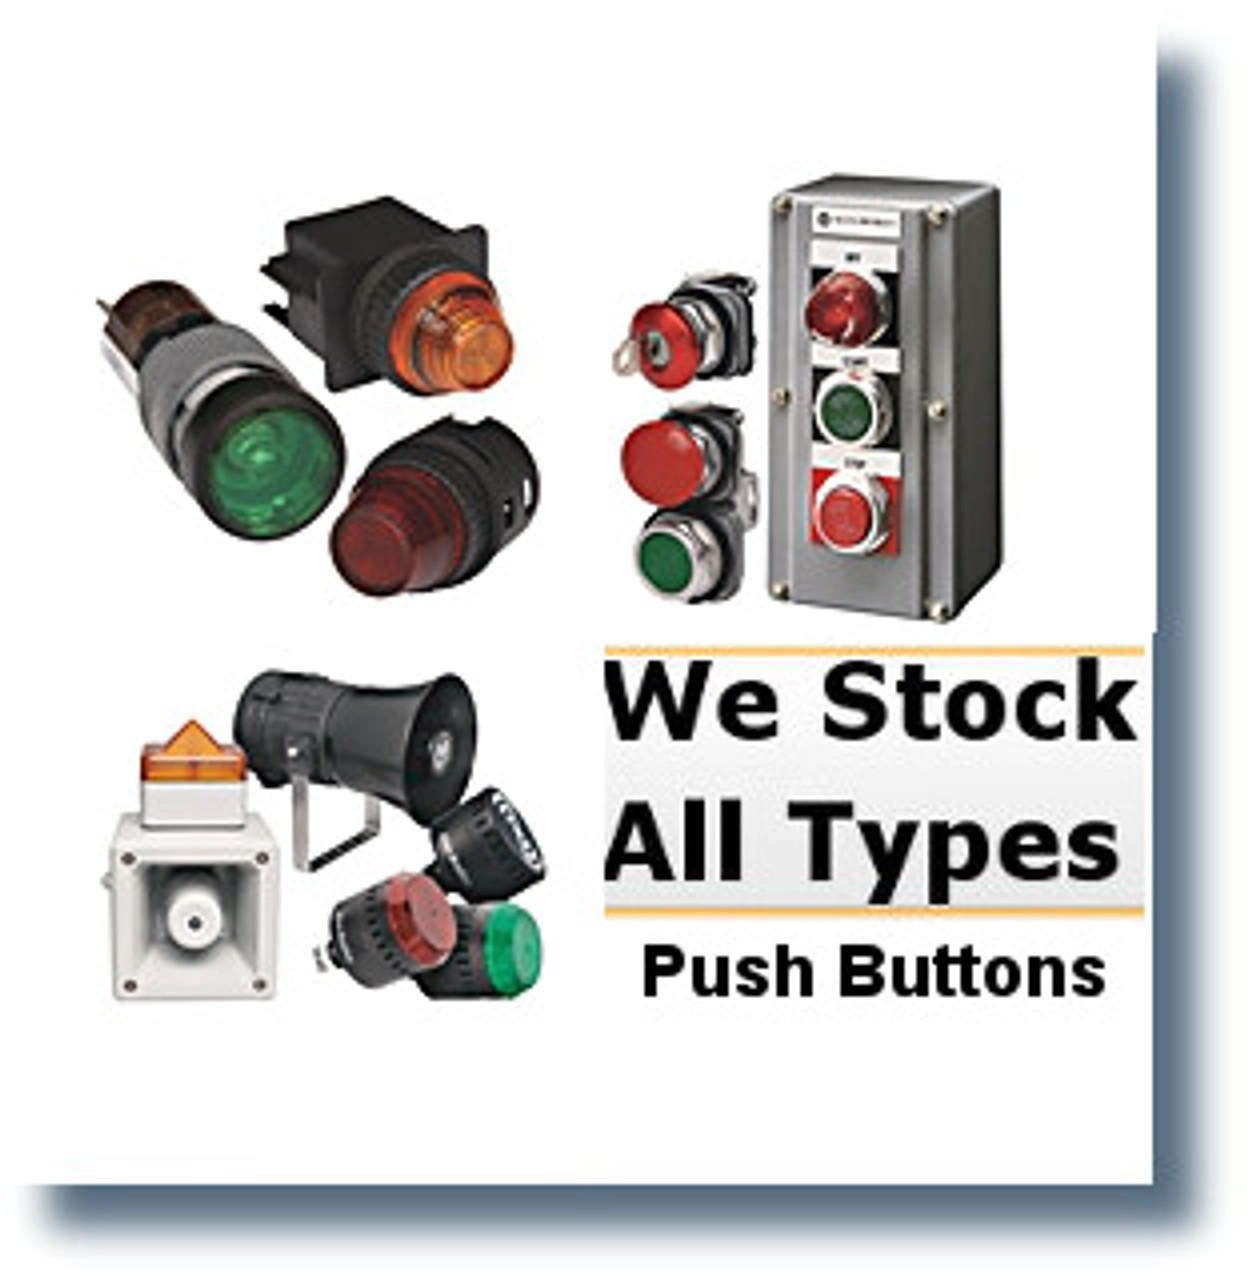 hight resolution of abd101nb idec pushbuttons pushbuttons 30mm pushbutton